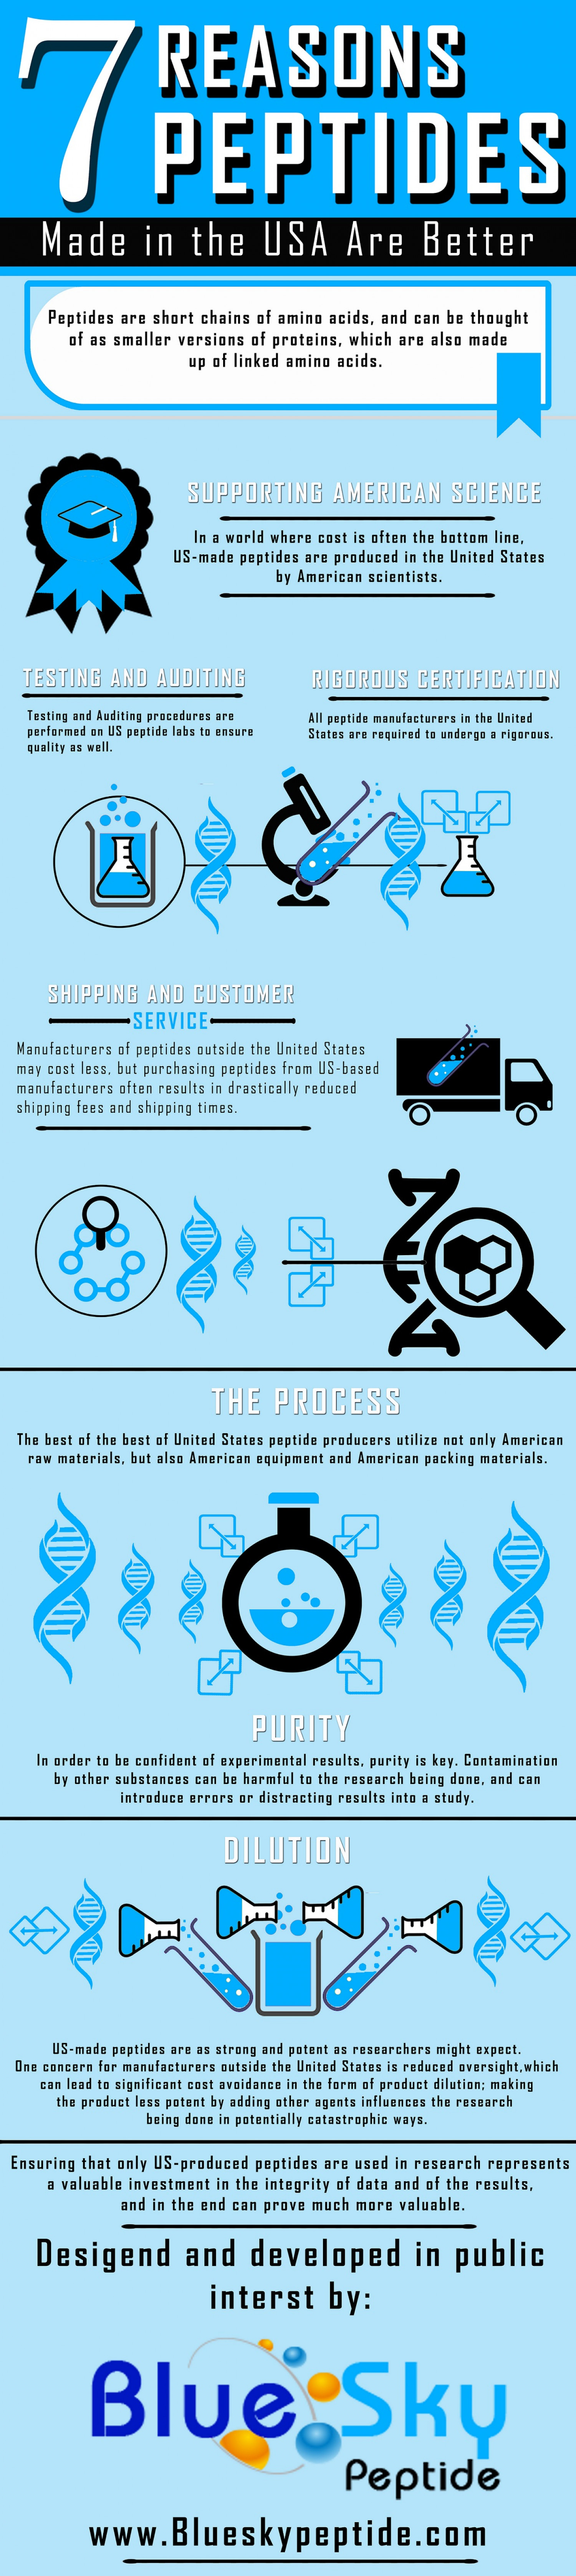 7 Reasons Peptides Made In The Usa Are Better Infographic